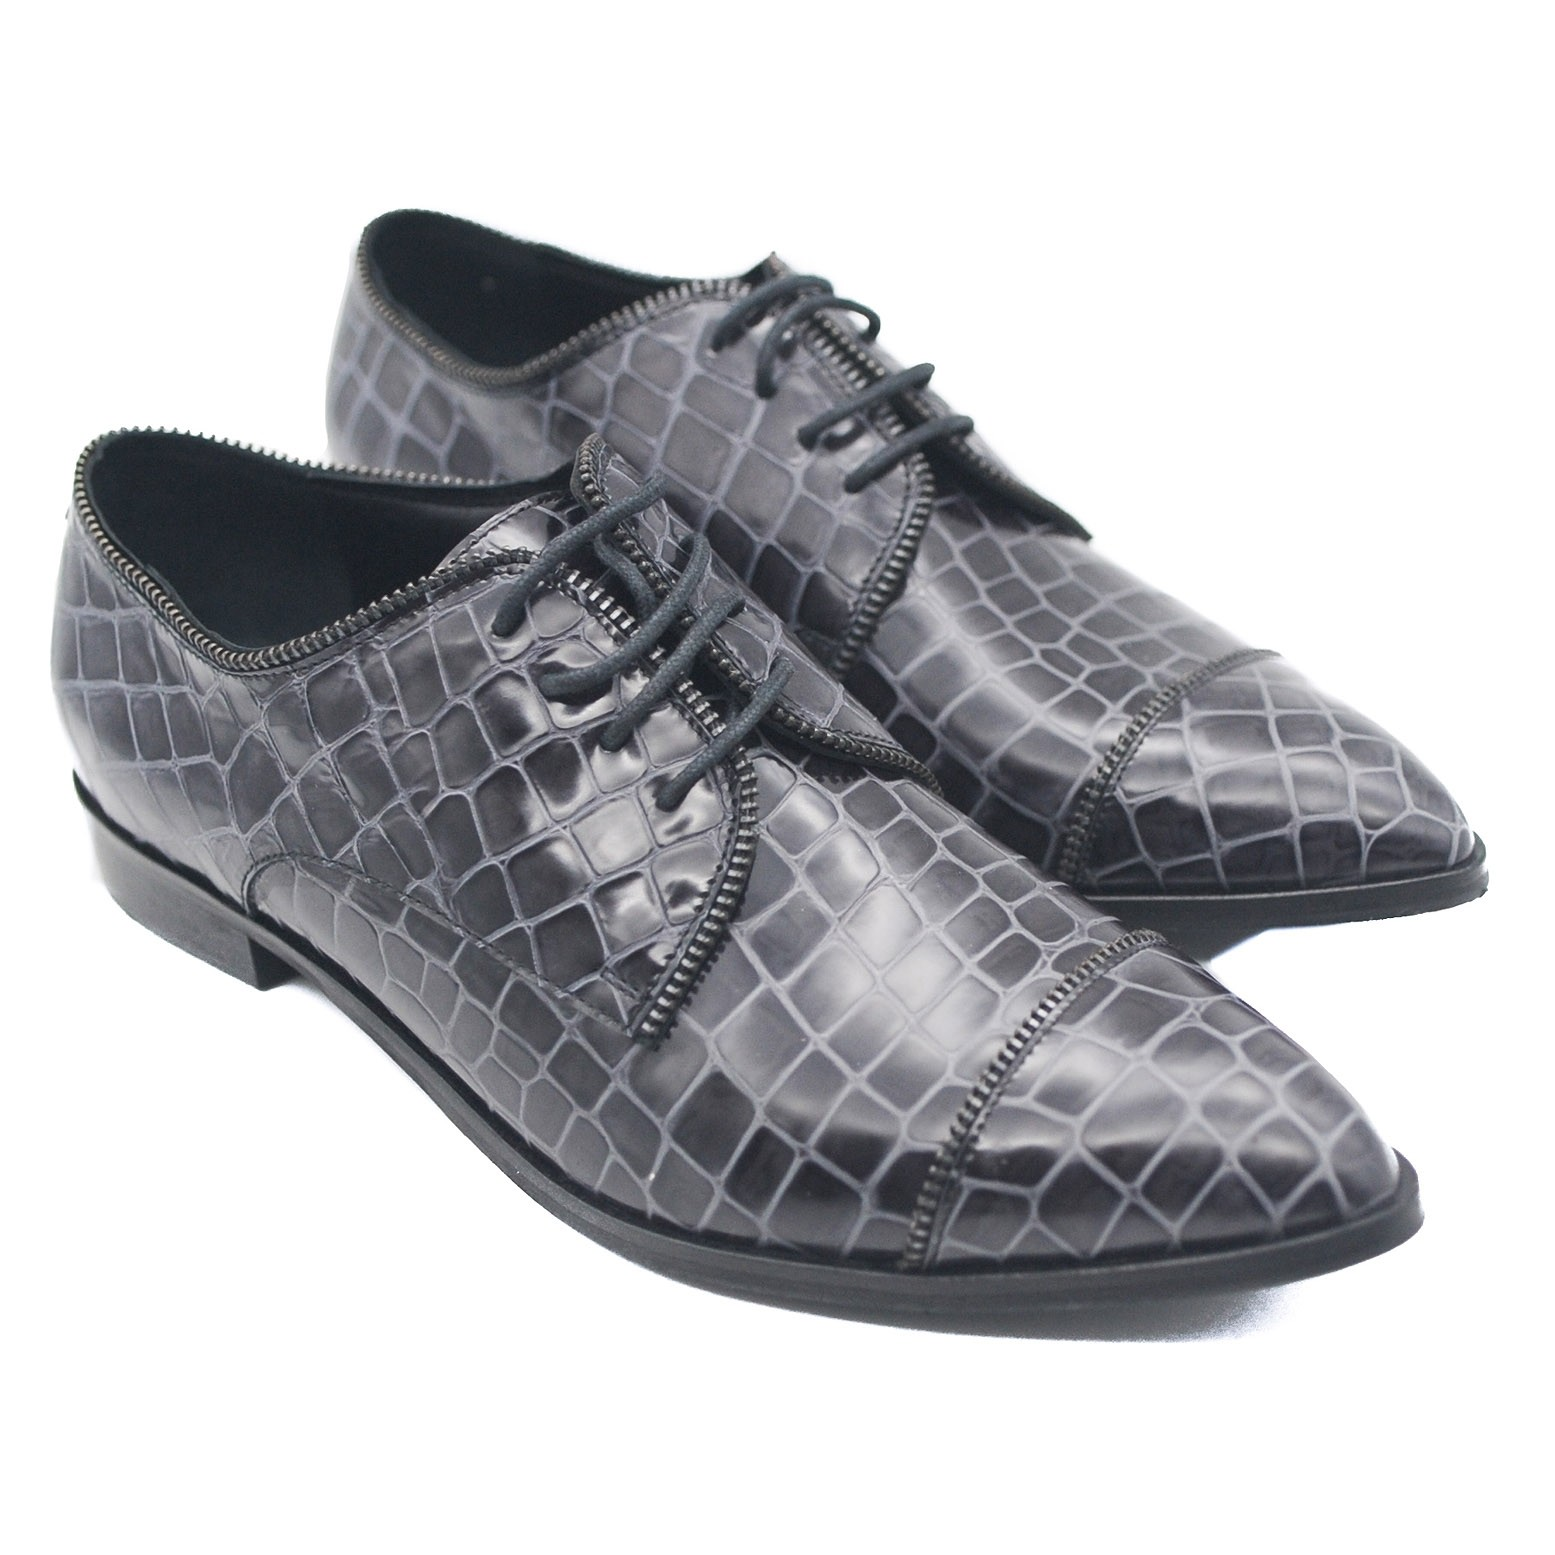 Goody2Shoes Ladies Grey Brogues Pebble Effect Lace Up Leather Brogues with Decorative Zip